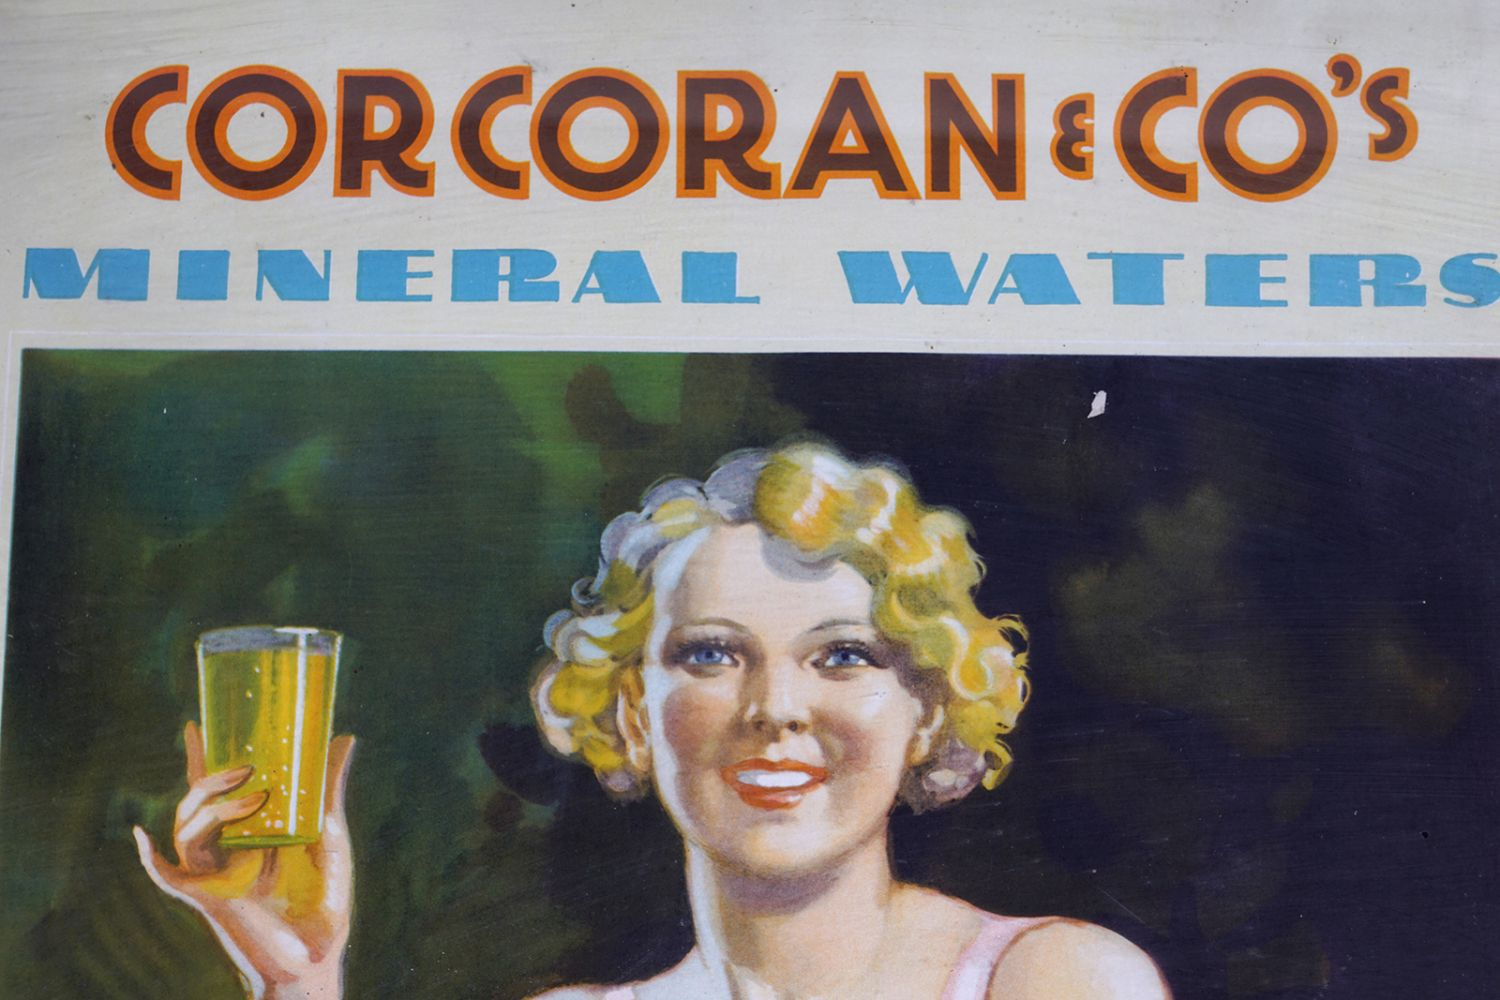 CORCORAN & CO'S MINERAL WATERS ORIGINAL SIGN - Image 2 of 6